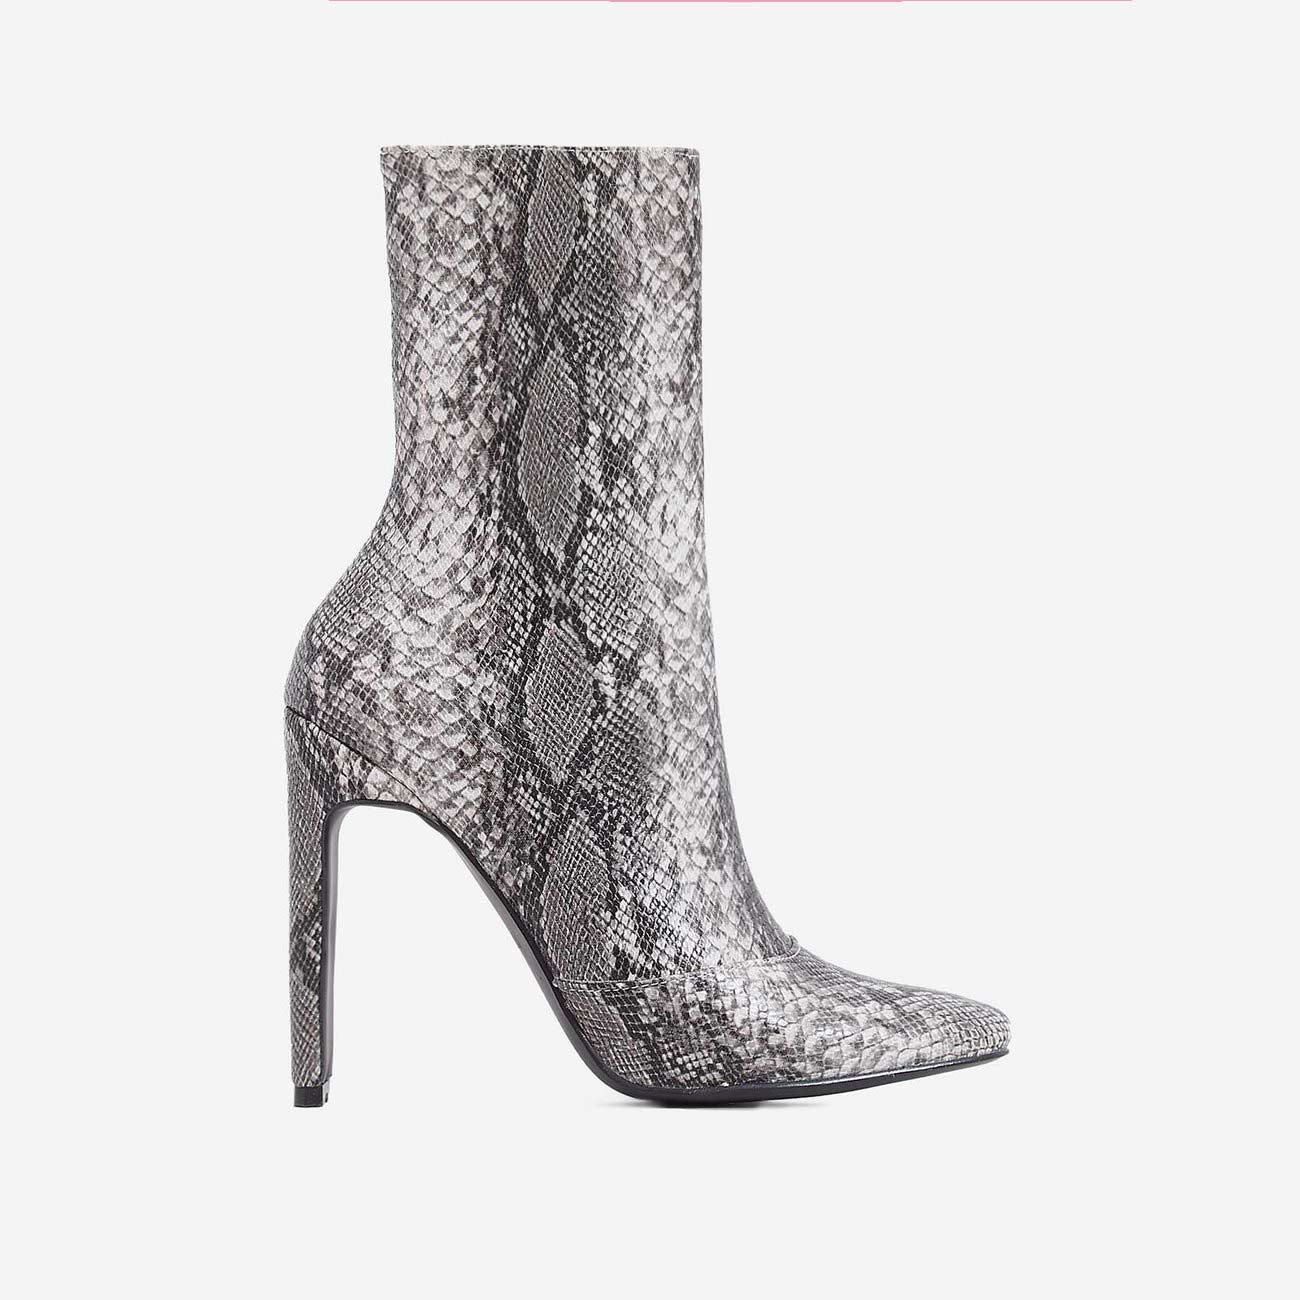 Boomslang Flat Heel Ankle Boot In Grey Snake Print Faux Leather